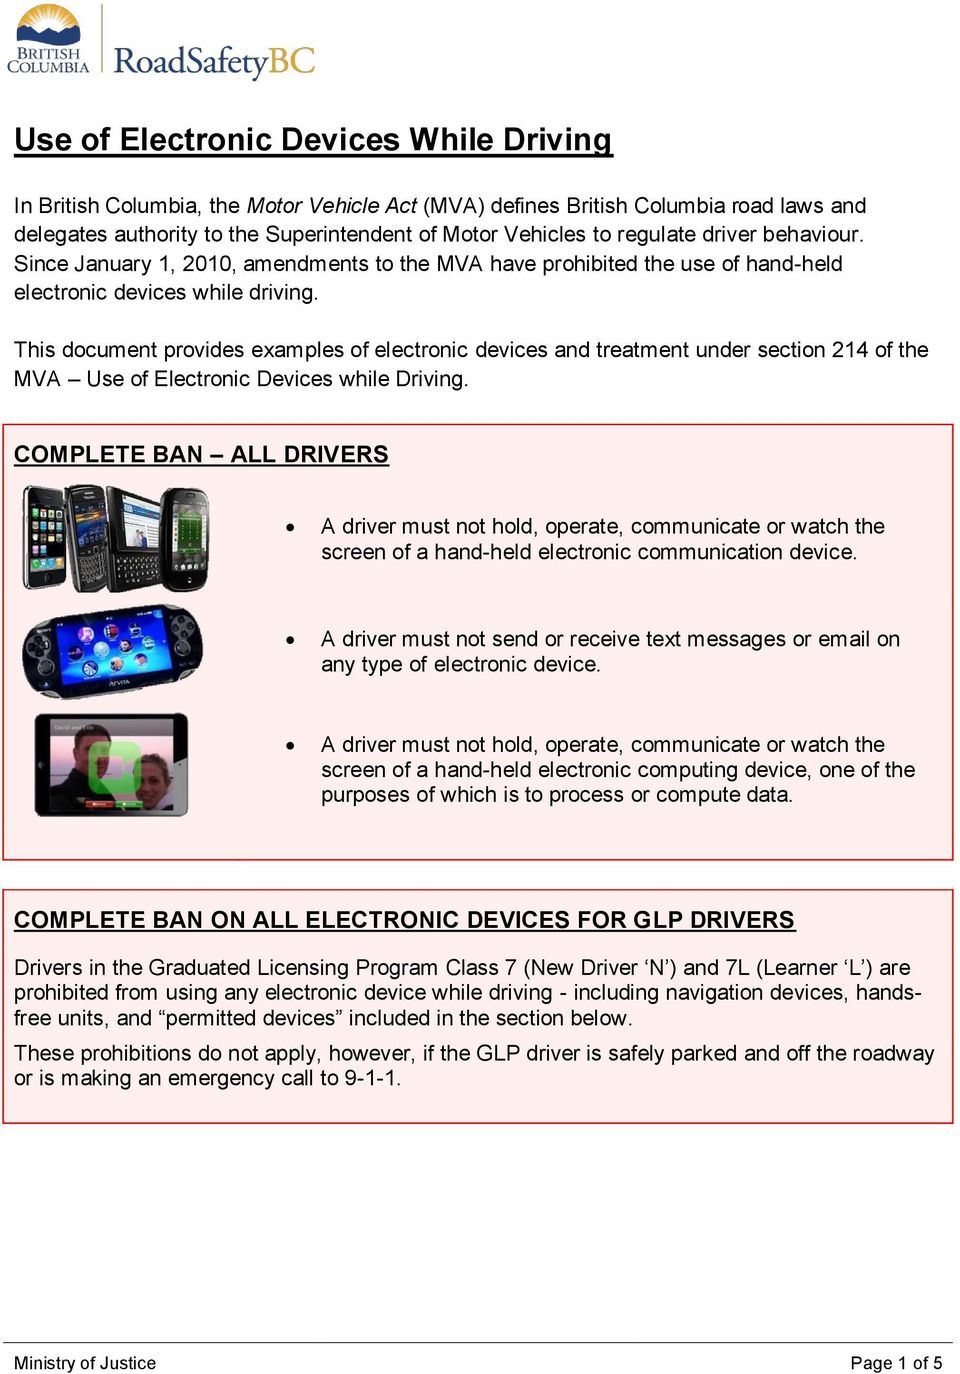 This document provides examples of electronic devices and treatment under section 214 of the MVA Use of Electronic Devices while Driving.